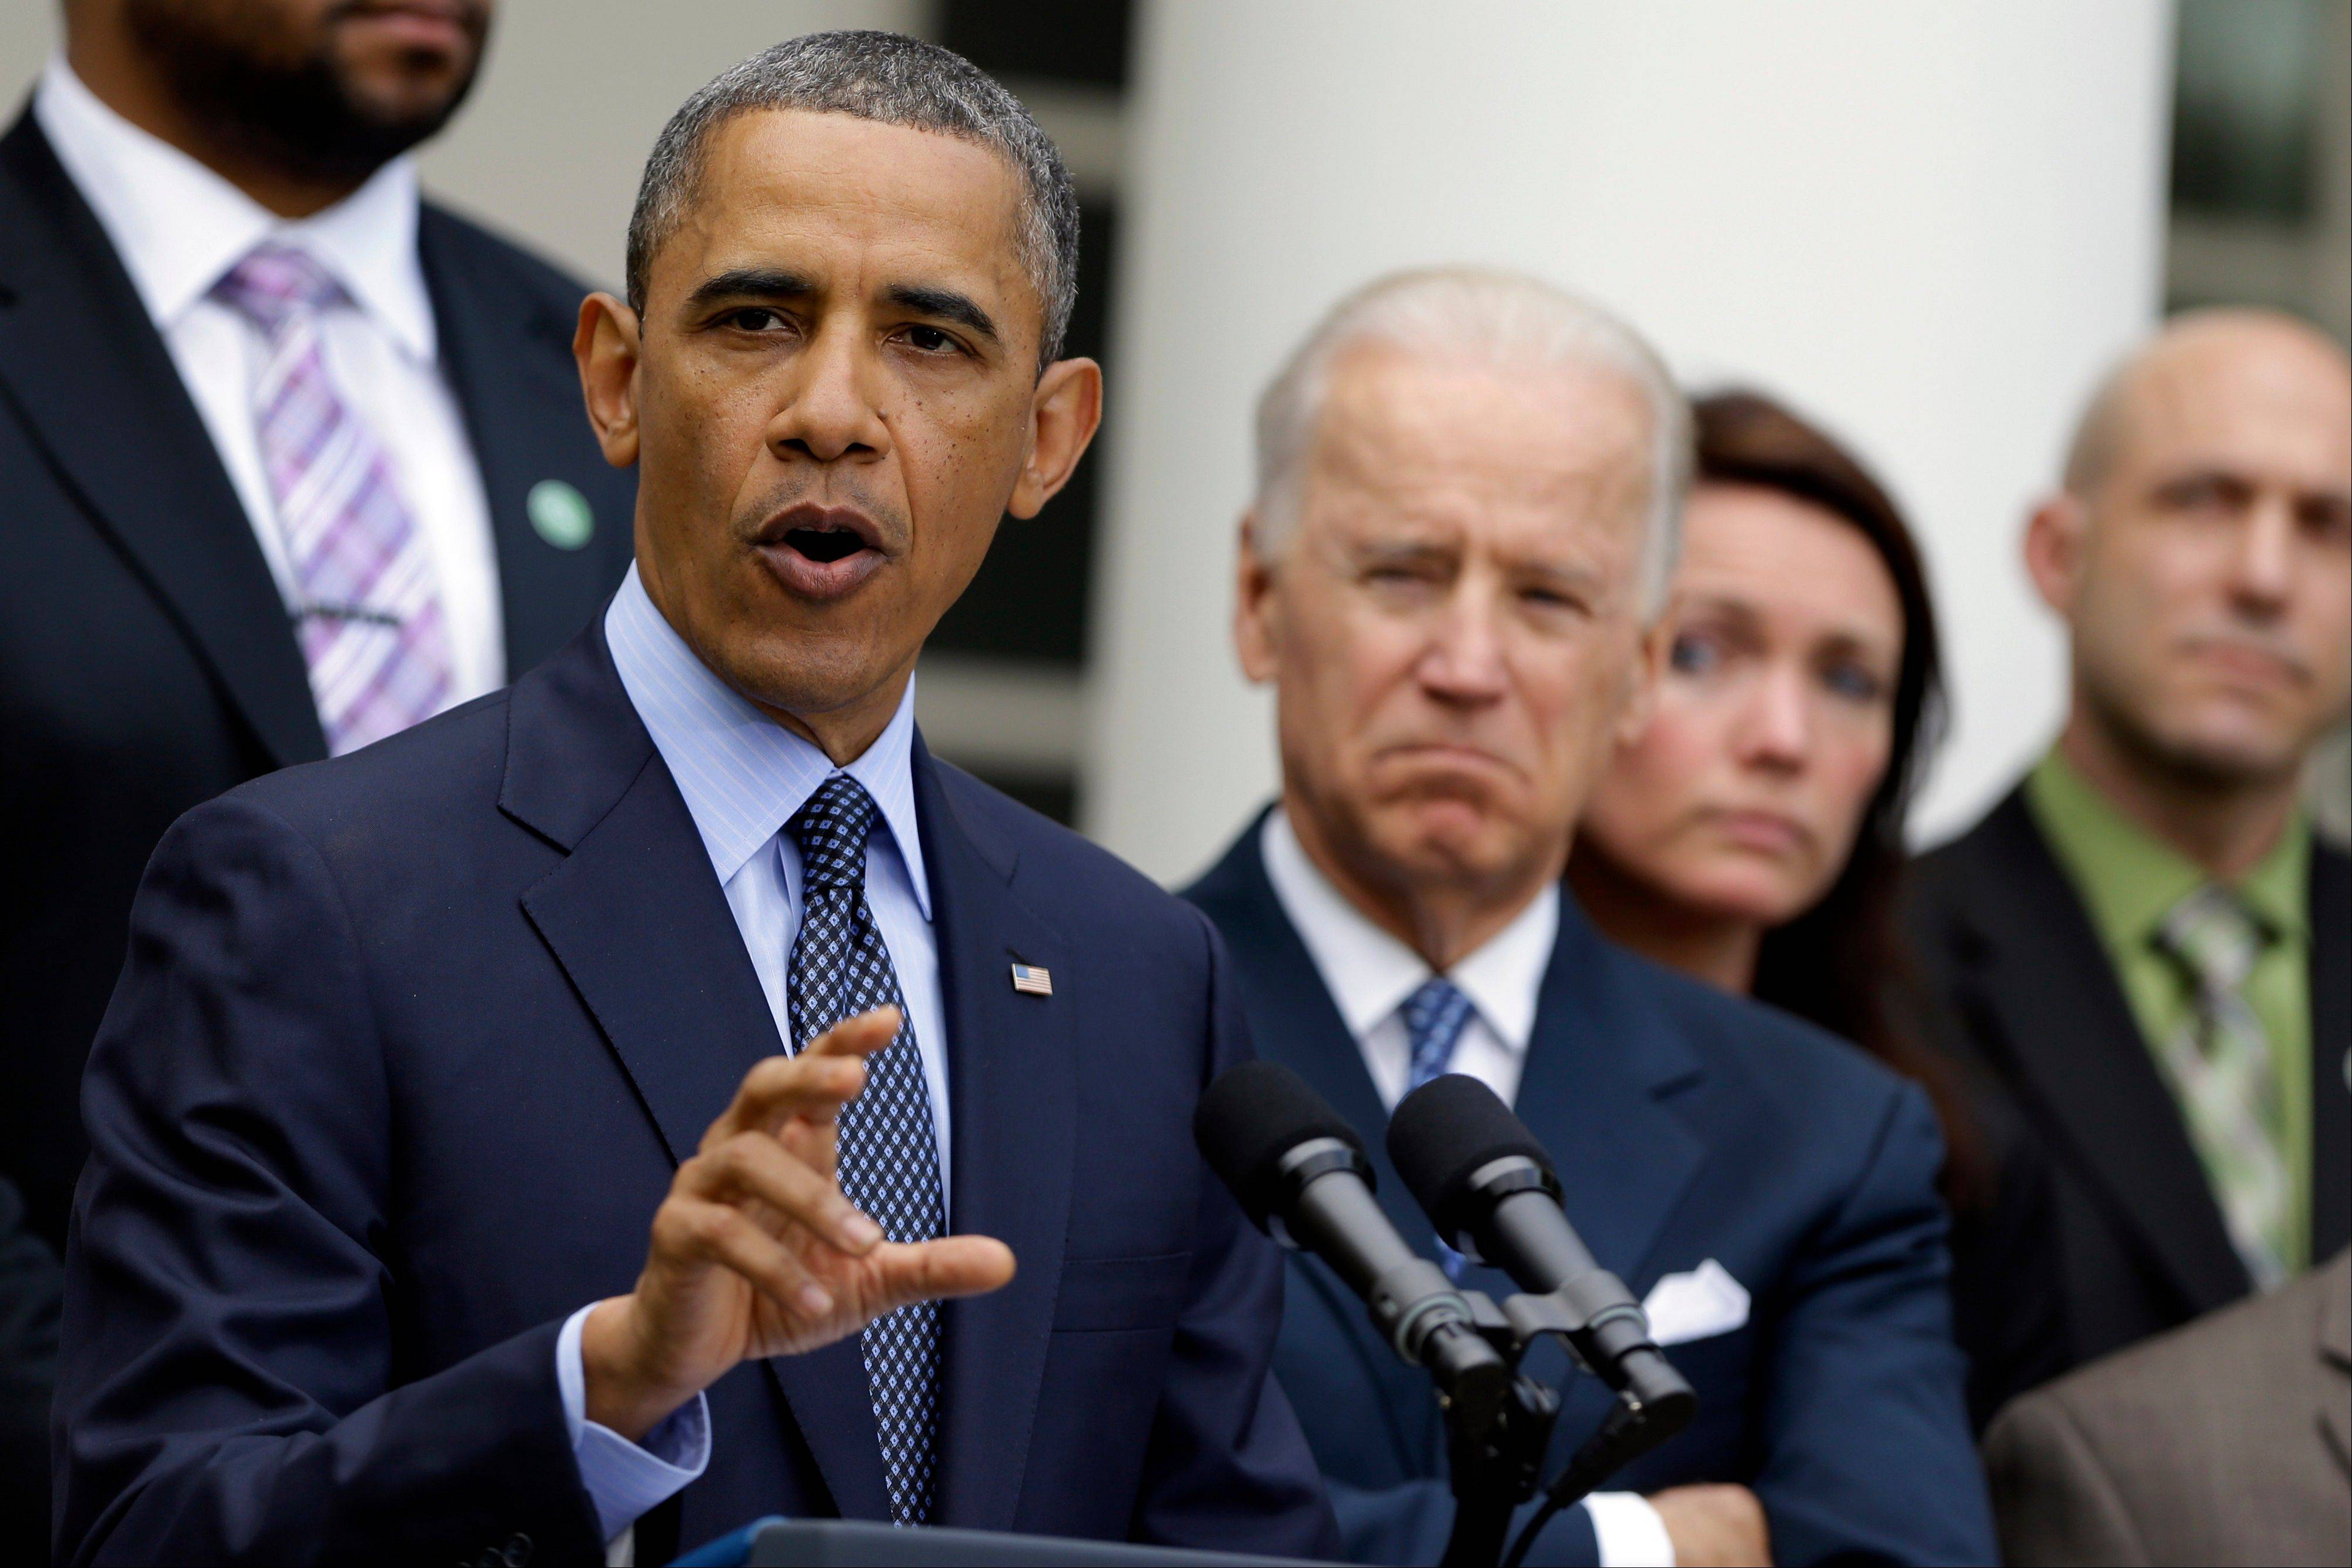 President Barack Obama, next to Vice President Joe Biden, gestures as he speaks during a news conference in the Rose Garden of the White House, in Washington, on Wednesday, April 17, 2013, about the defeat in the Senate of a bill to expand background checks on guns.